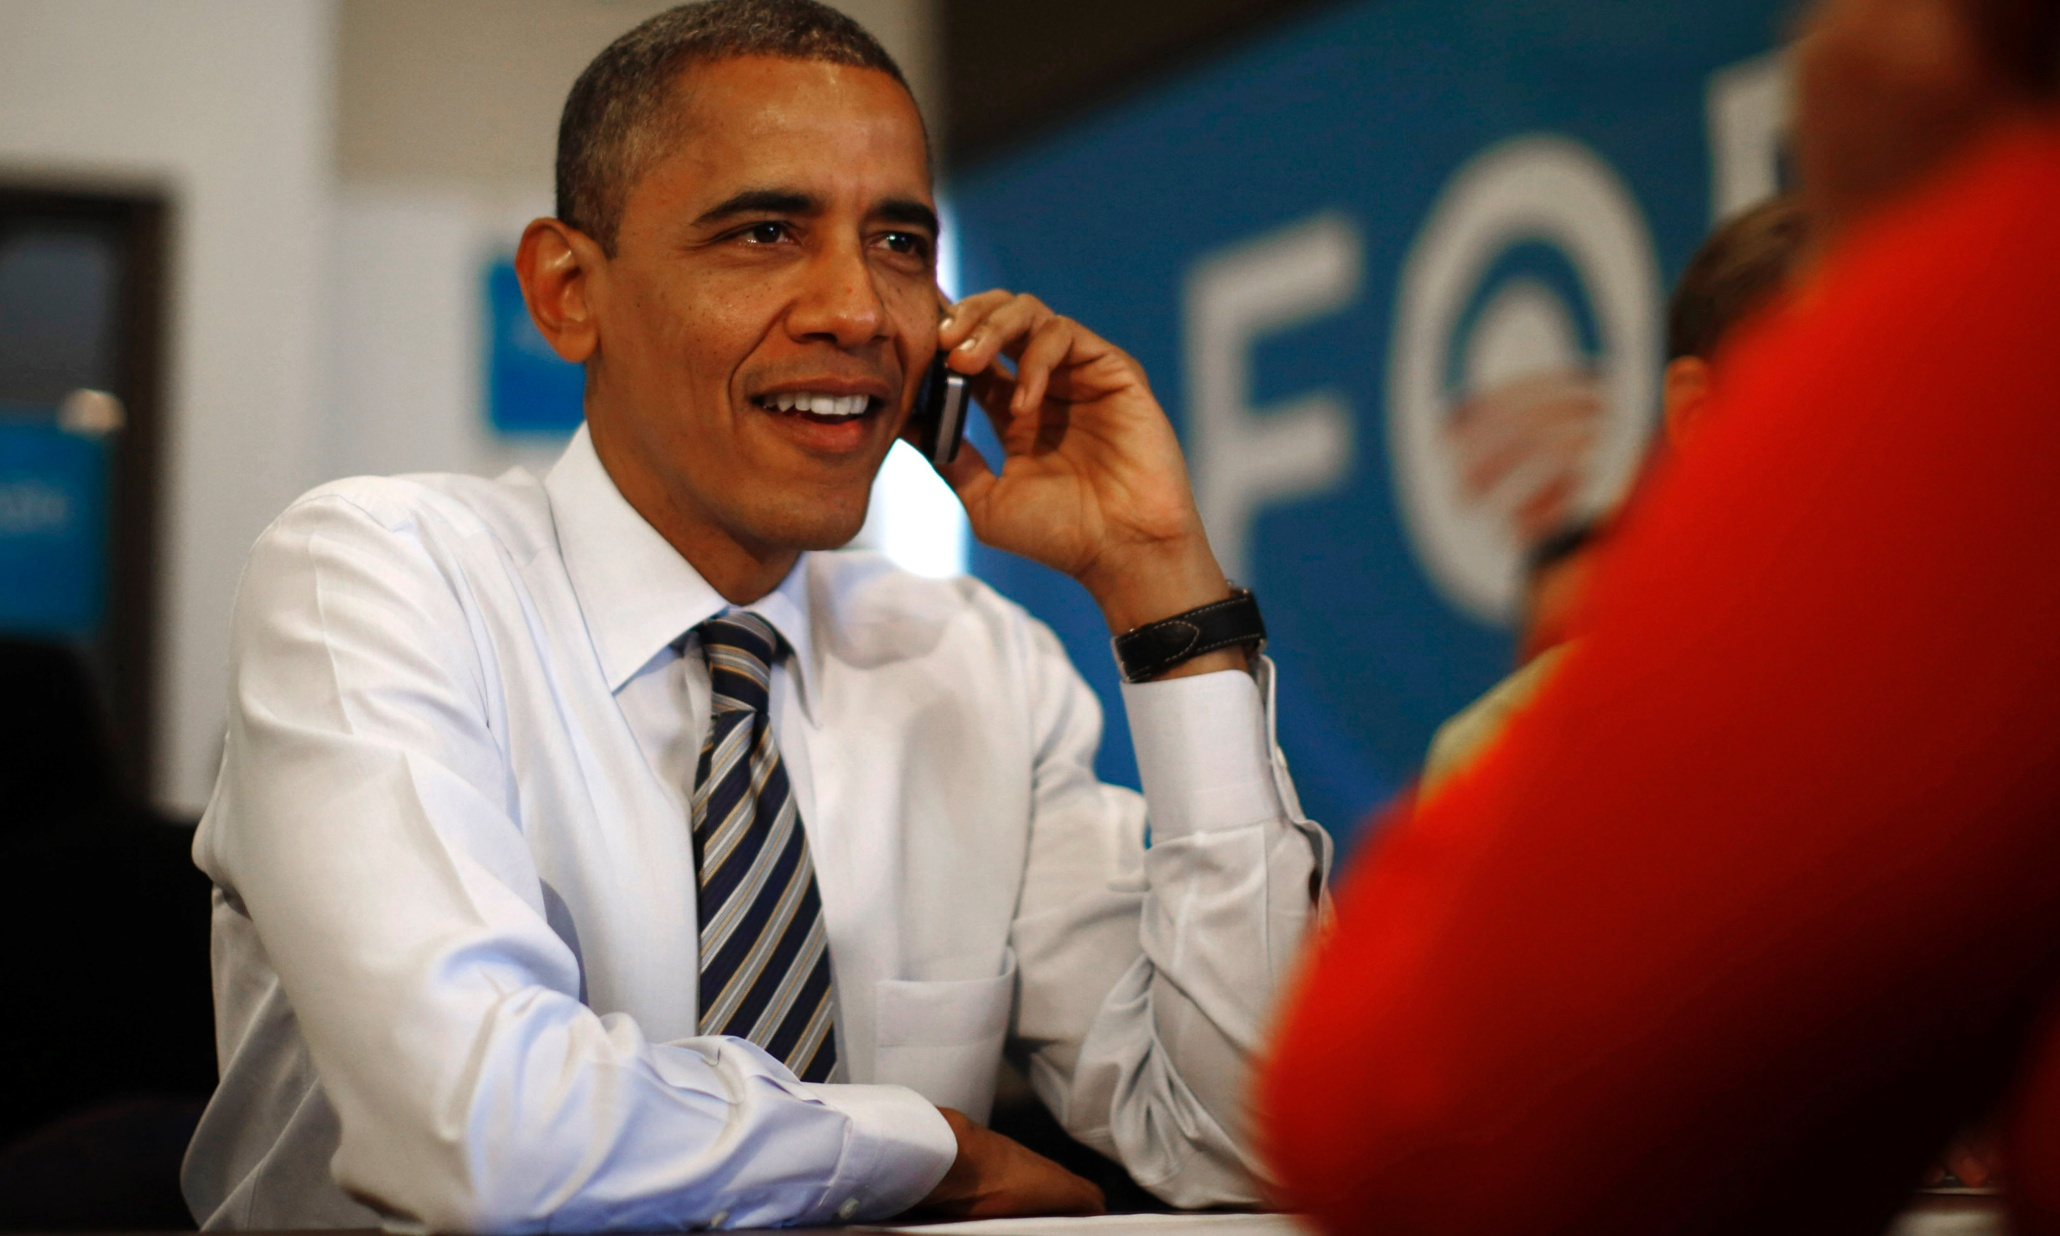 """Obama No Can Be Have a IPhone """"For Security Reasons"""""""